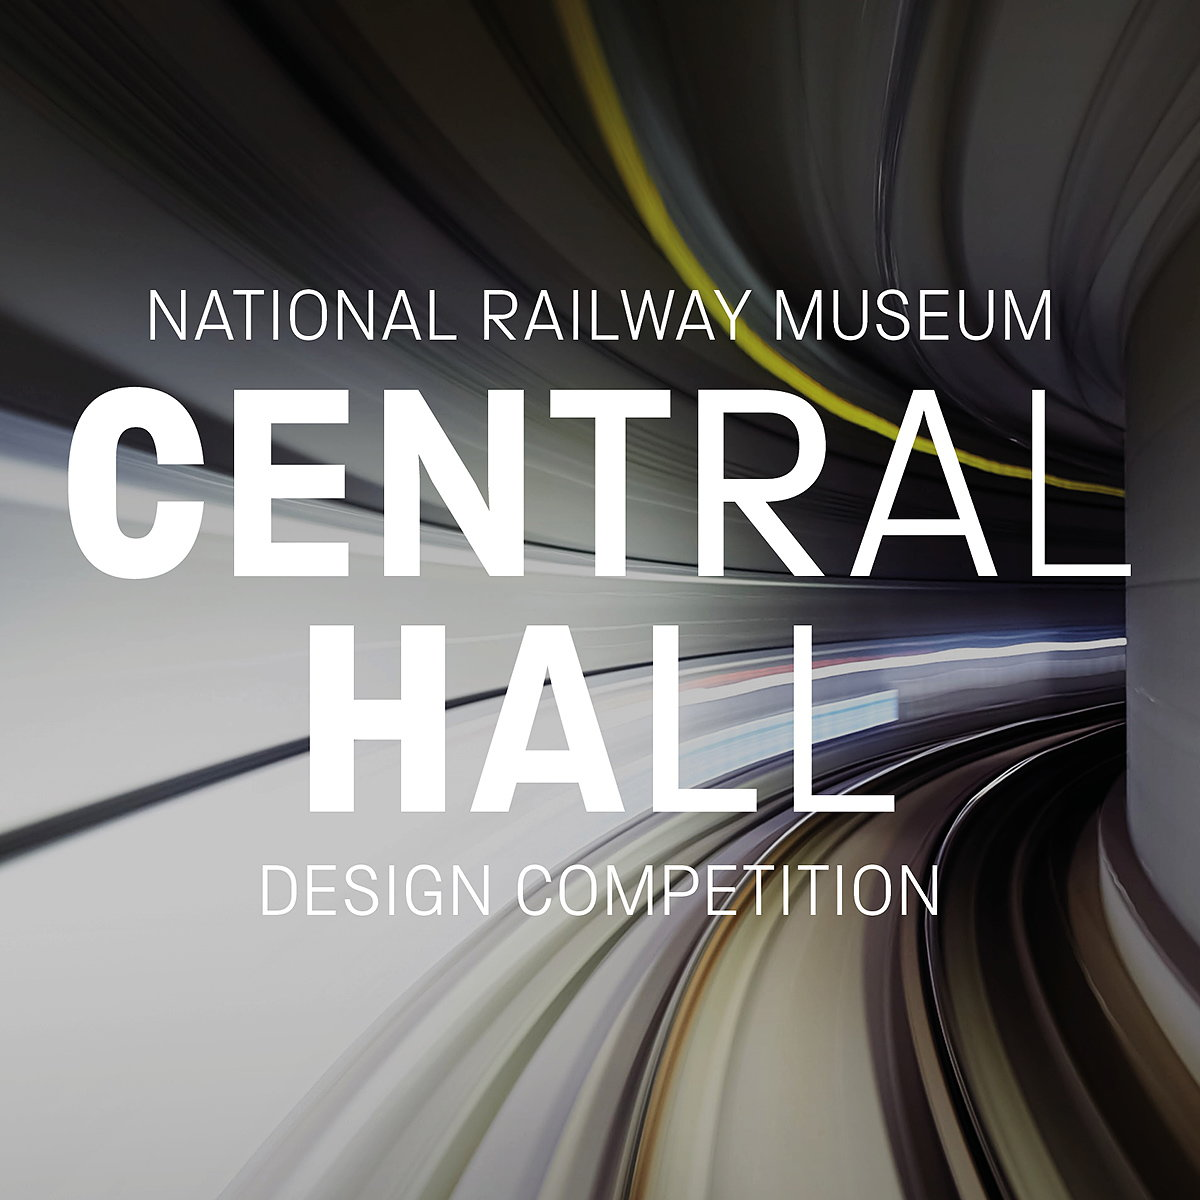 UK's National Railway Museum Launches Design Competition for New Central Hall